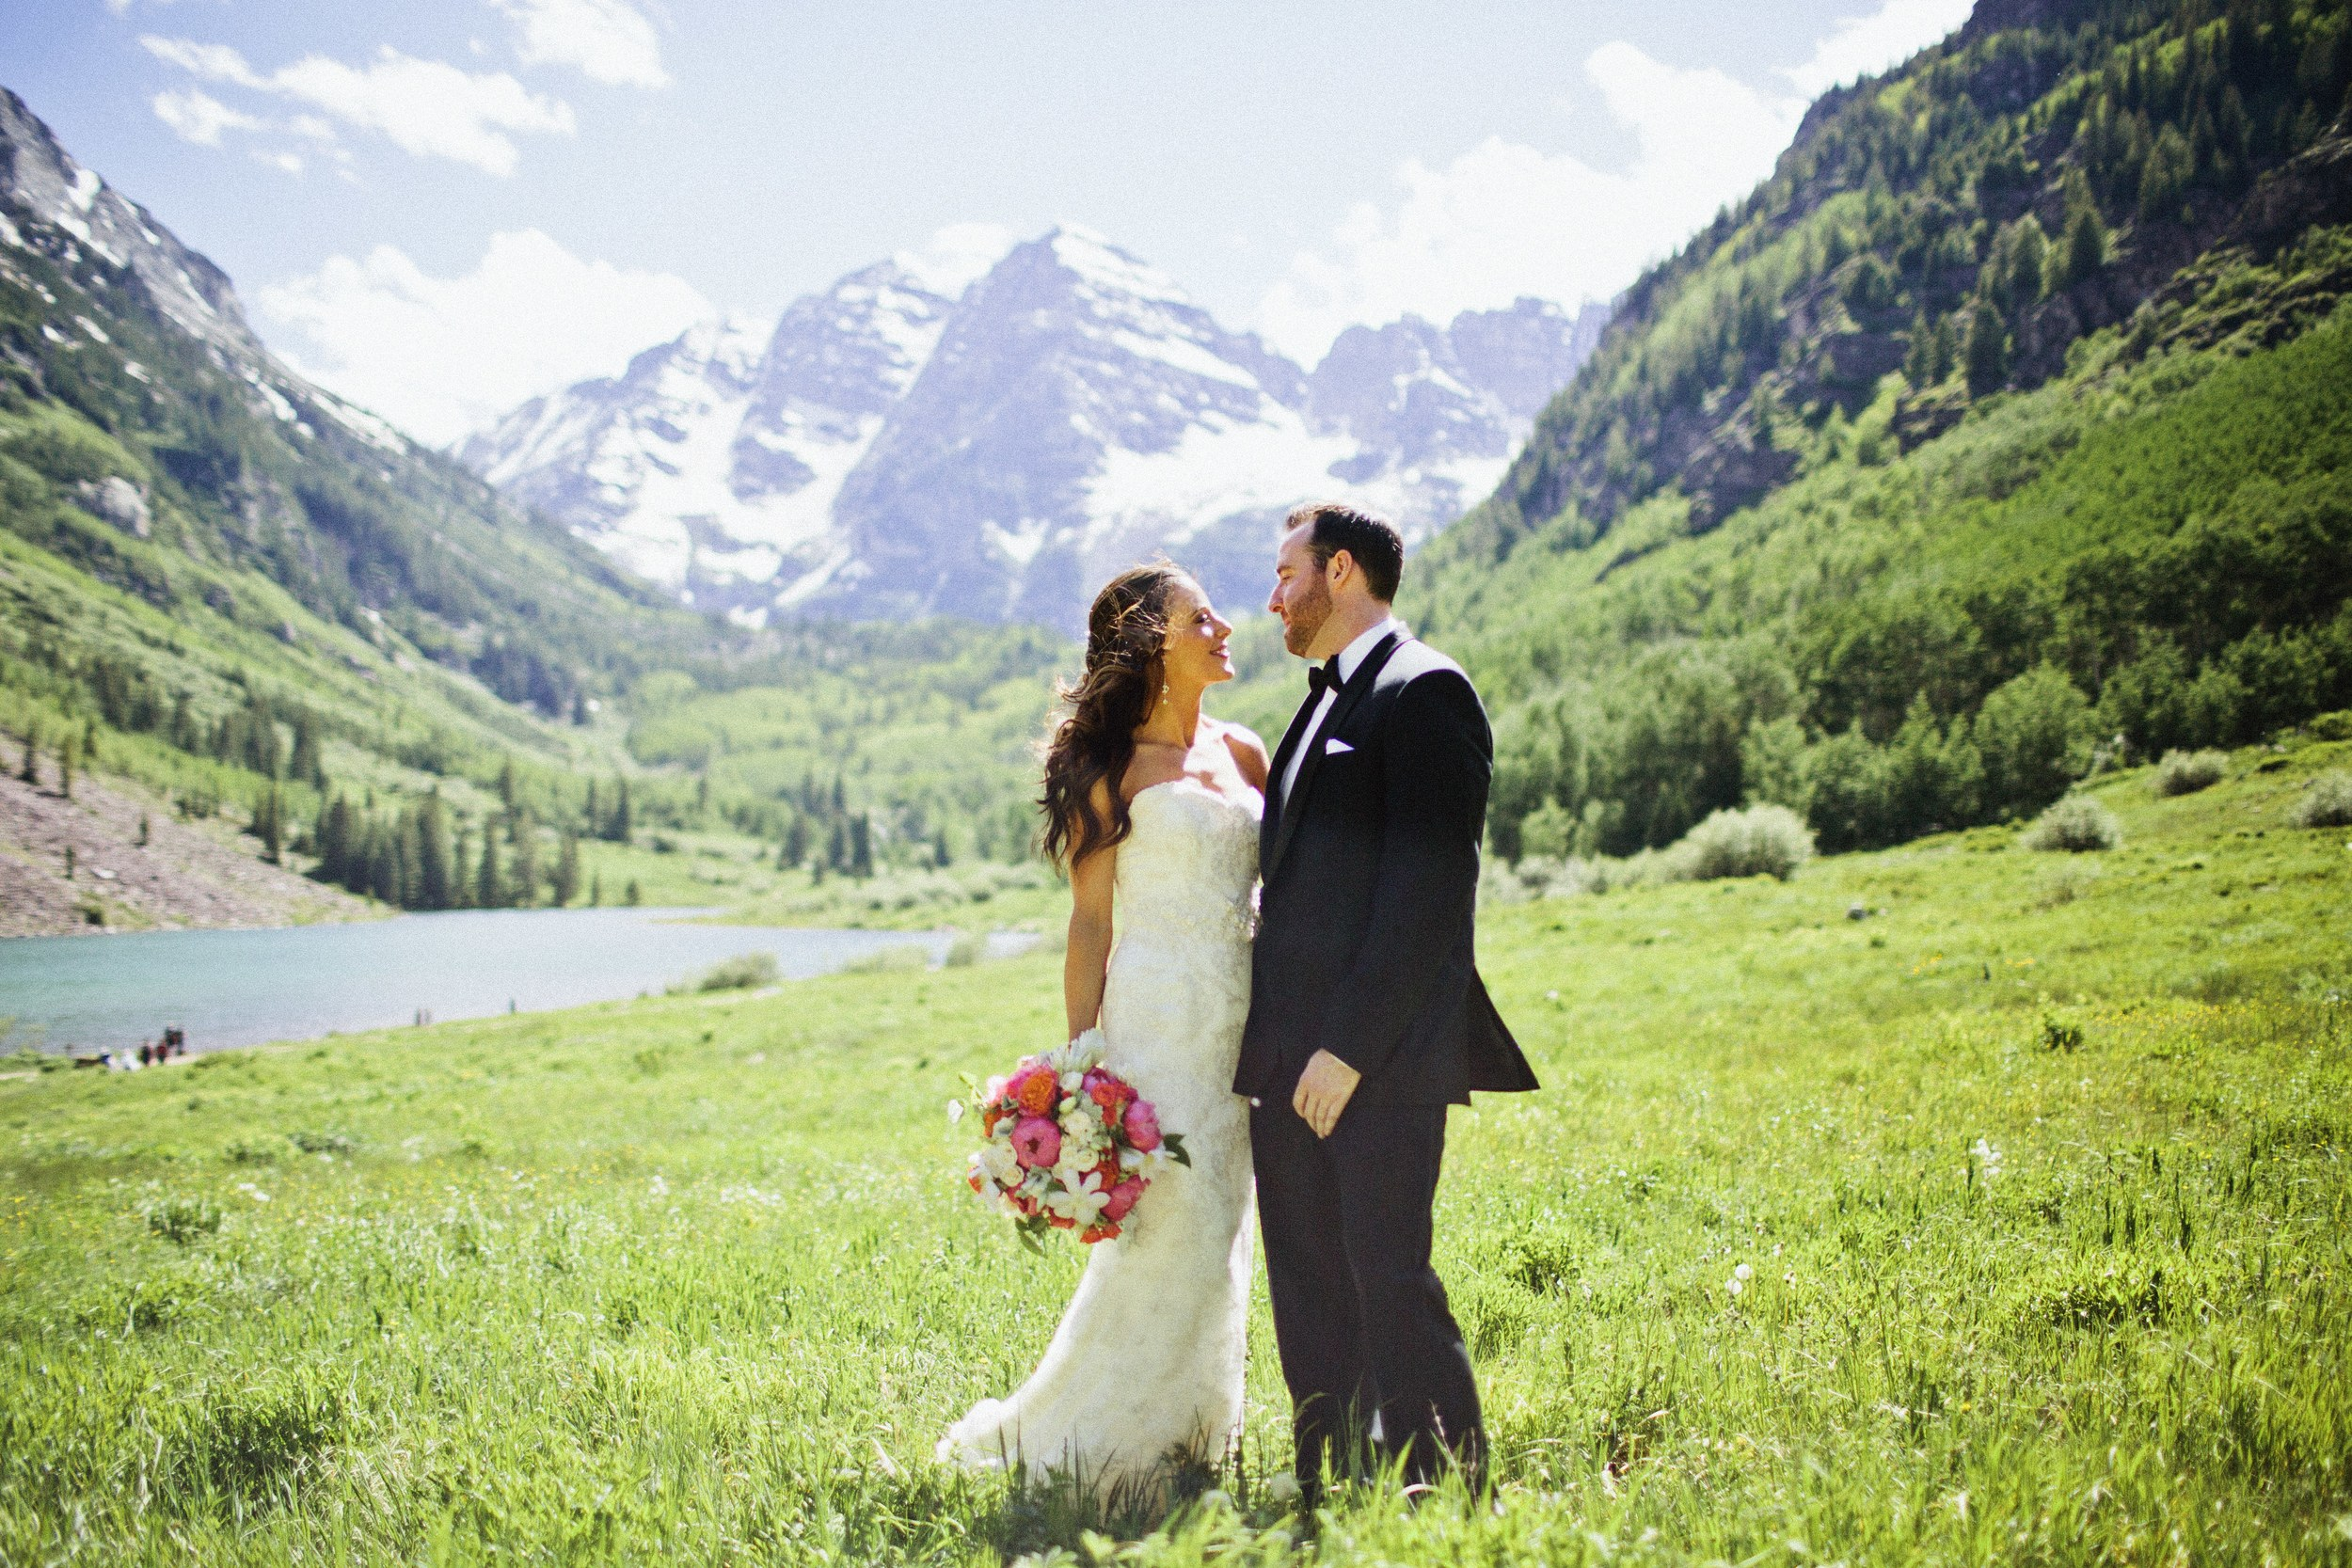 Melissa | 2014 | The Maroon Bells | Aspen, Colorado |  Happy Confetti Photography